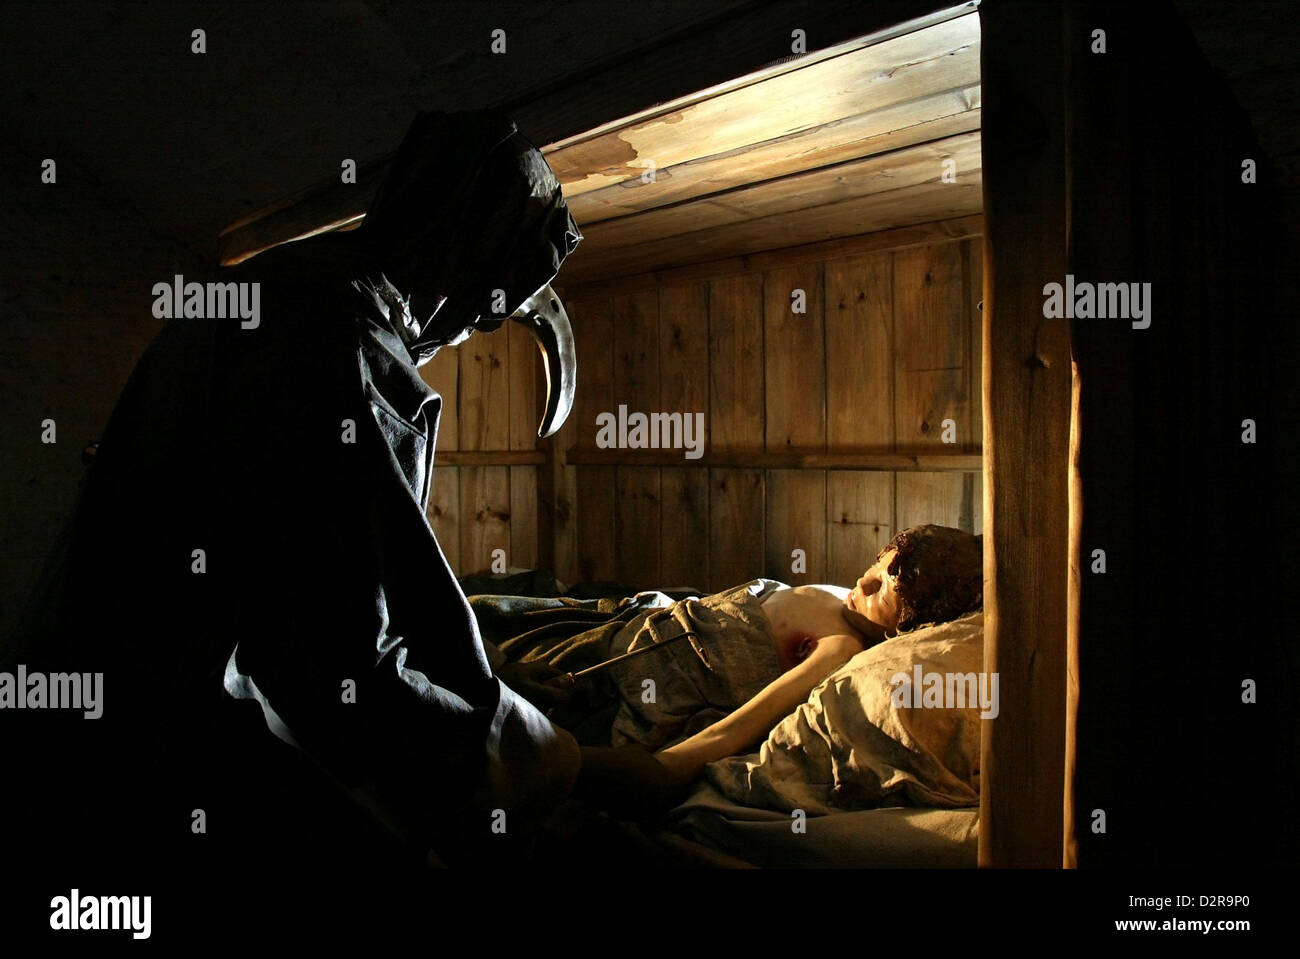 The Plague doctor attends a patient in the Plague room at the Real Mary King's Close tourist attraction in Edinburgh, - Stock Image